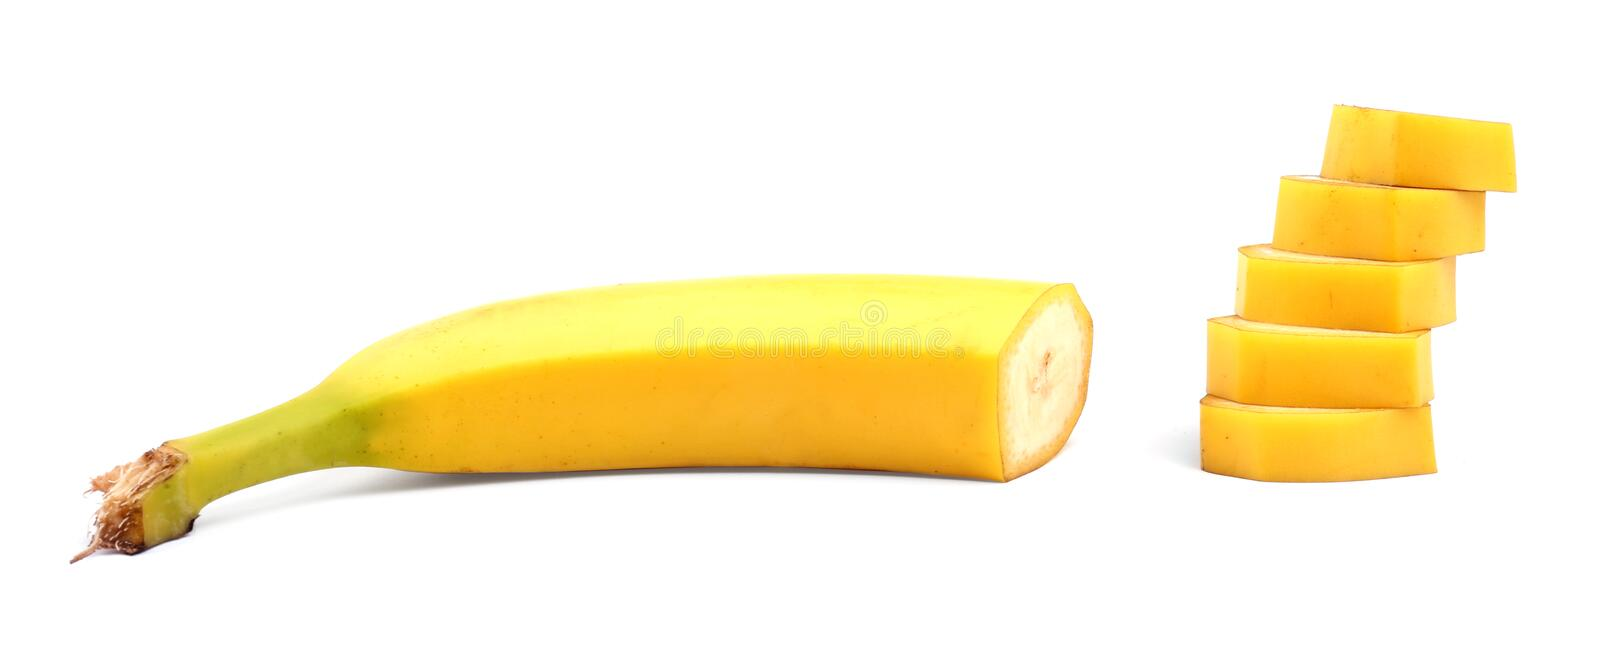 Close-up of a tasty, fresh, organic, ripe banana, isolated on white background. Delicious sweet and ripe banana. Tropical fruits. royalty free stock photos